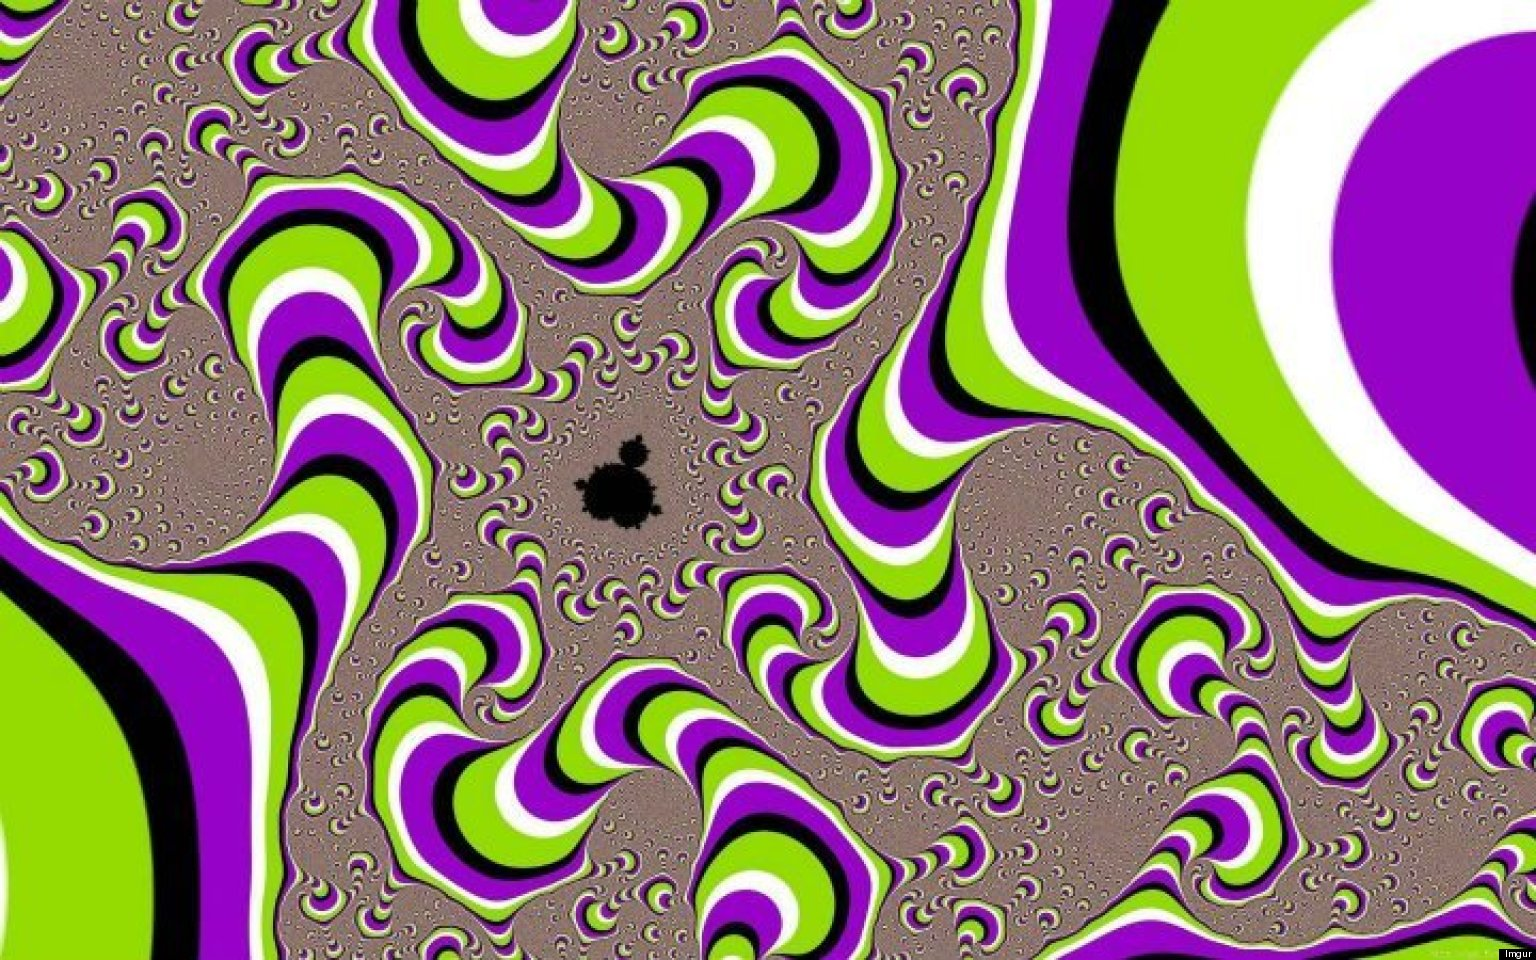 OPTICAL-ILLUSIONS-facebook.jpg